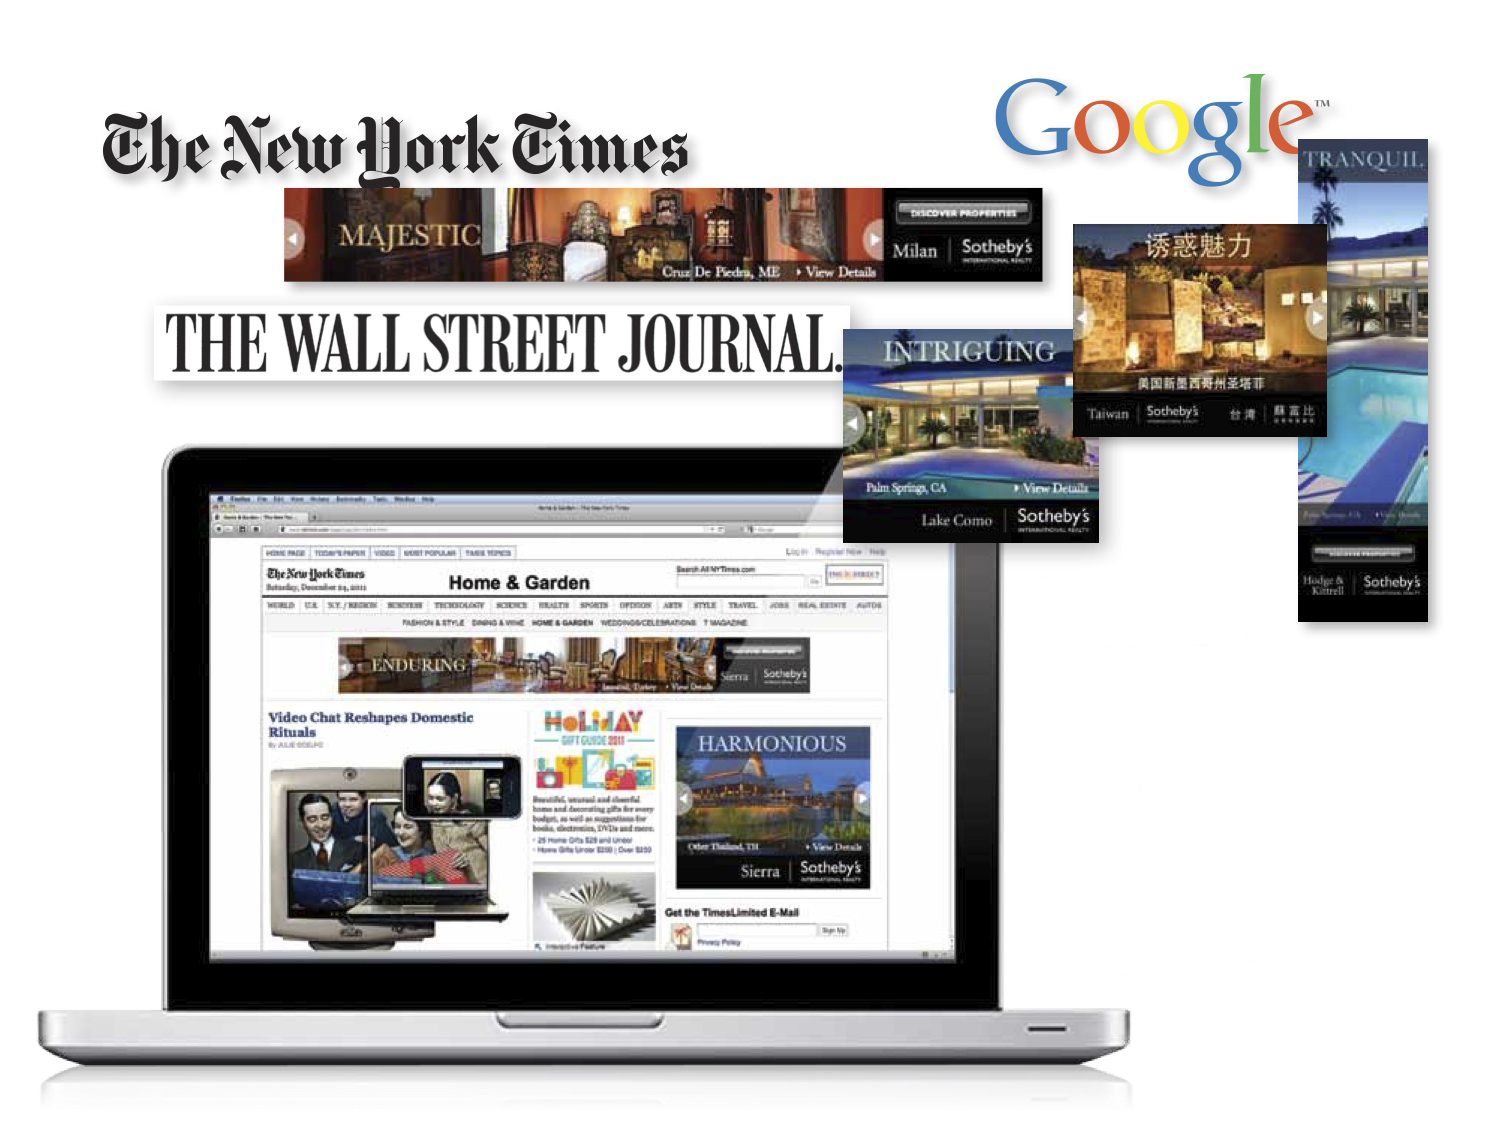 Our clients enjoy global media exposure from the America's to the Pacific Rim via well-known media moguls including: The New York Times, The Wall Street Journal, BBC, The Daily Telegraph, Financial Times, South China Morning Post, YouTube and Google.